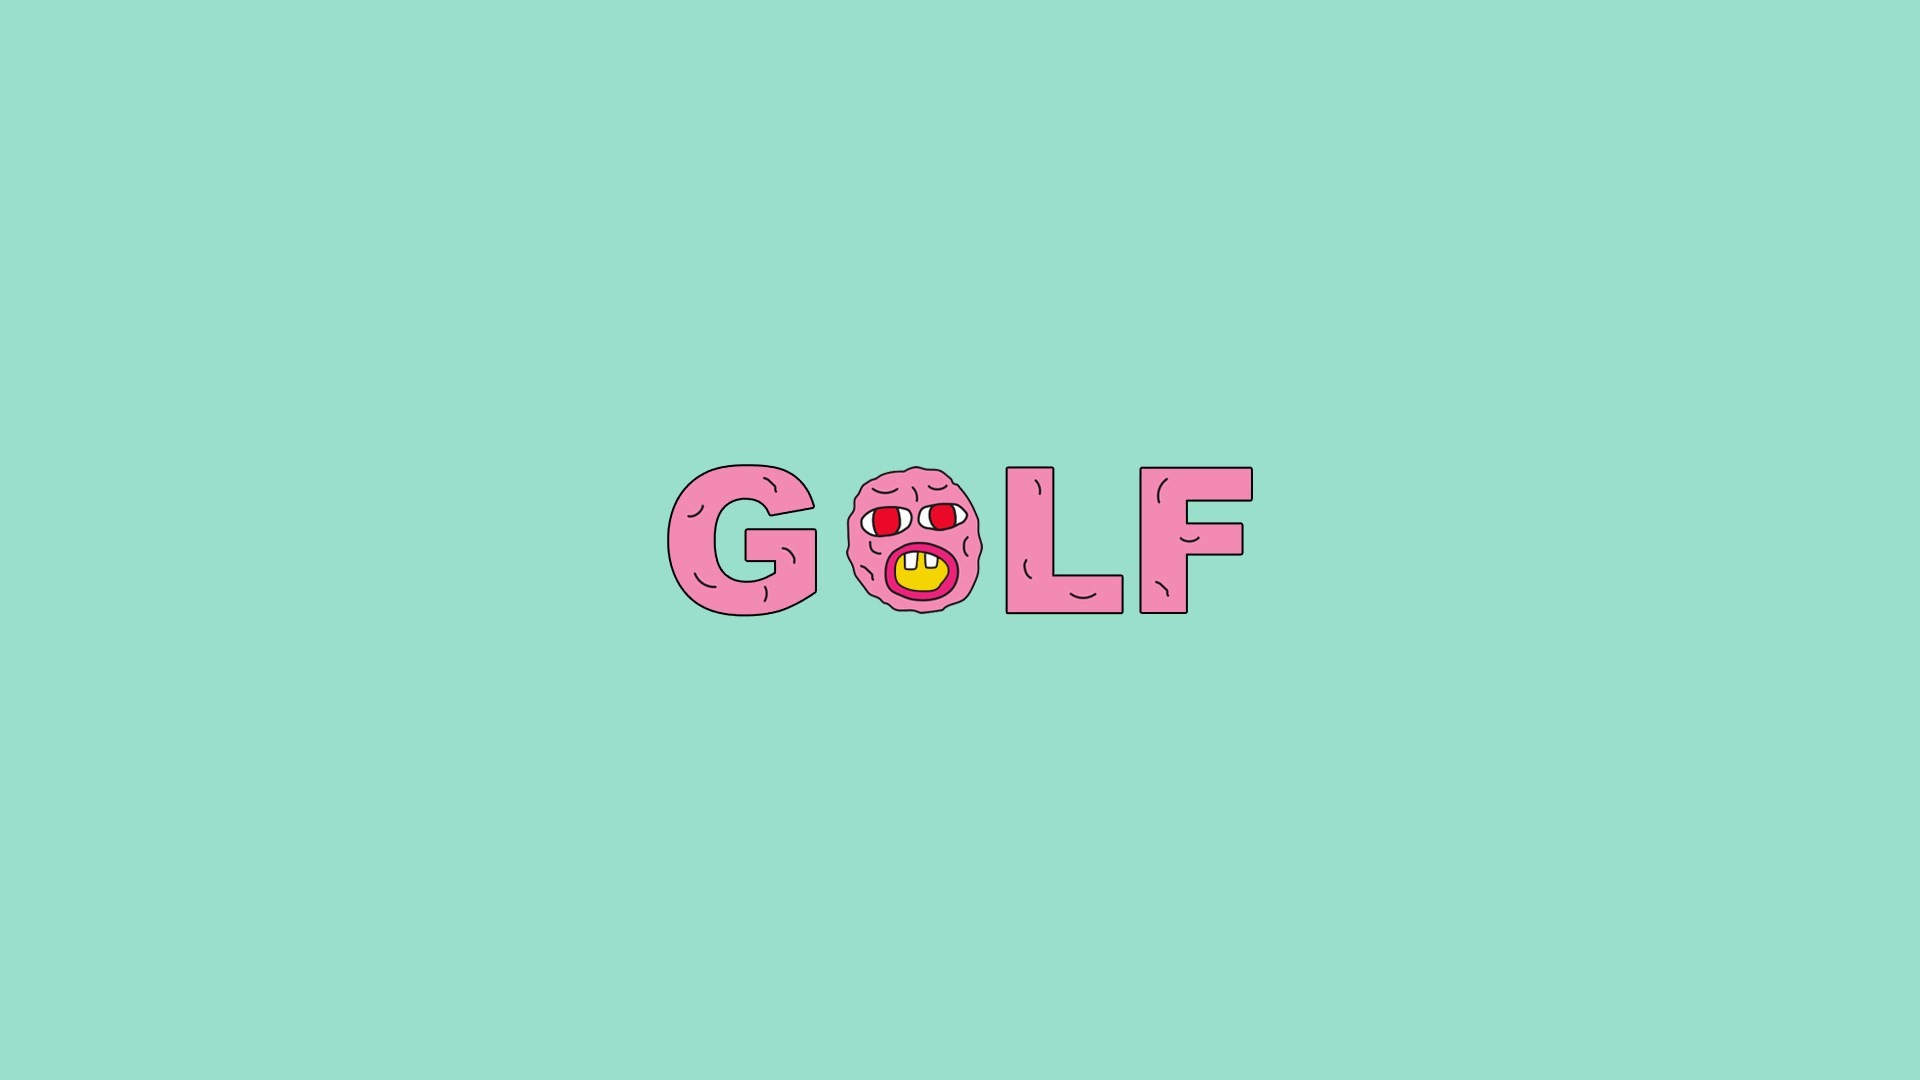 Odd Future Wallpaper HD (69+ images)